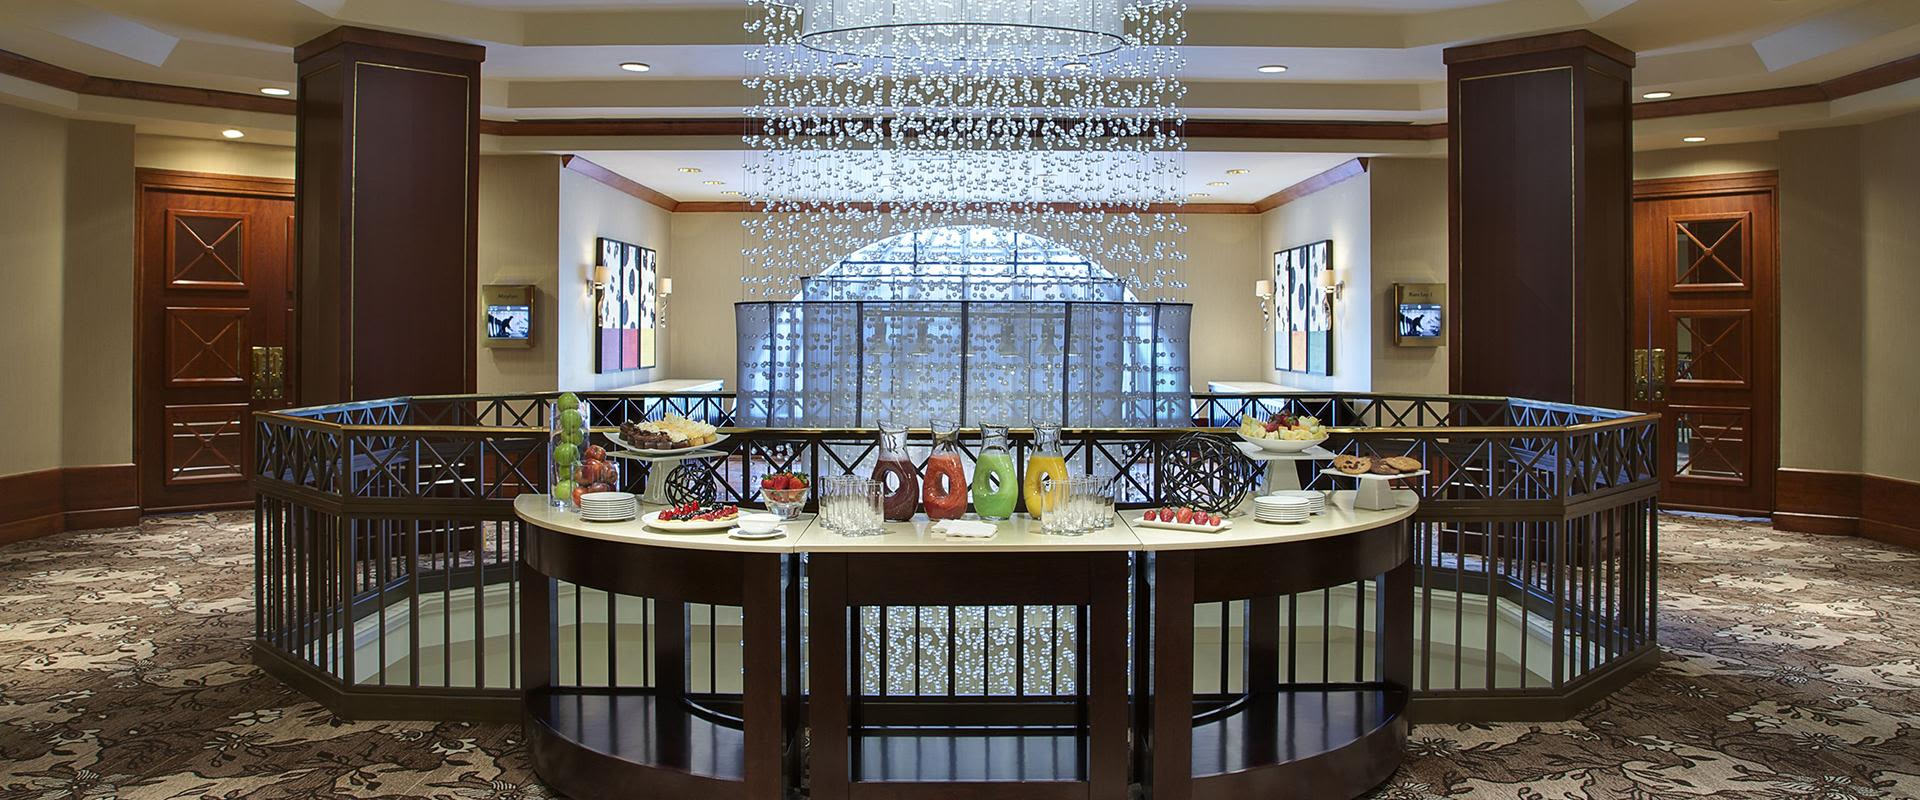 Toronto Grand Foyer with Food Table